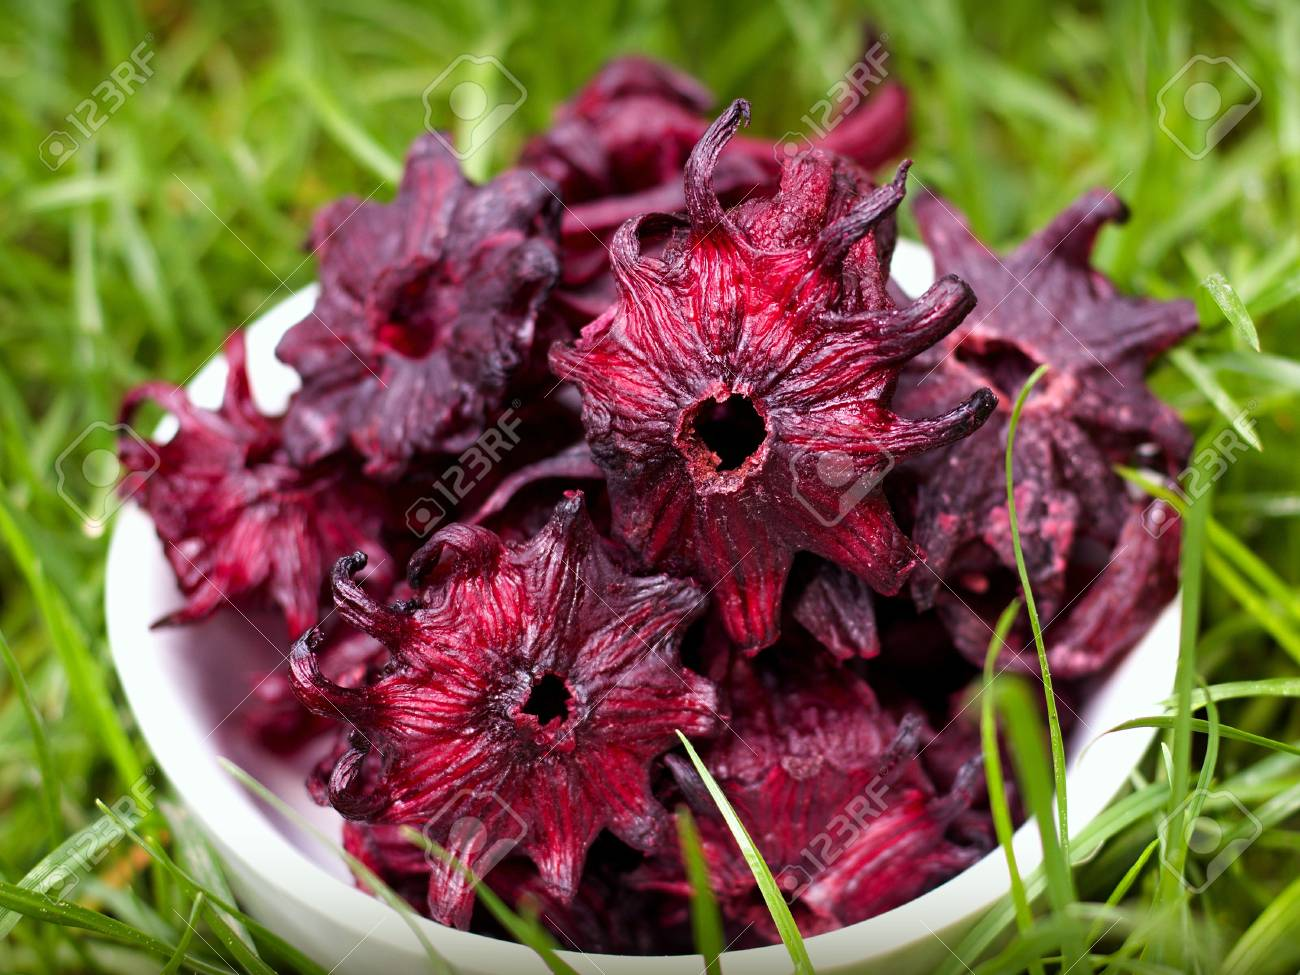 Dried Candied Hibiscus Flower In A Bowl